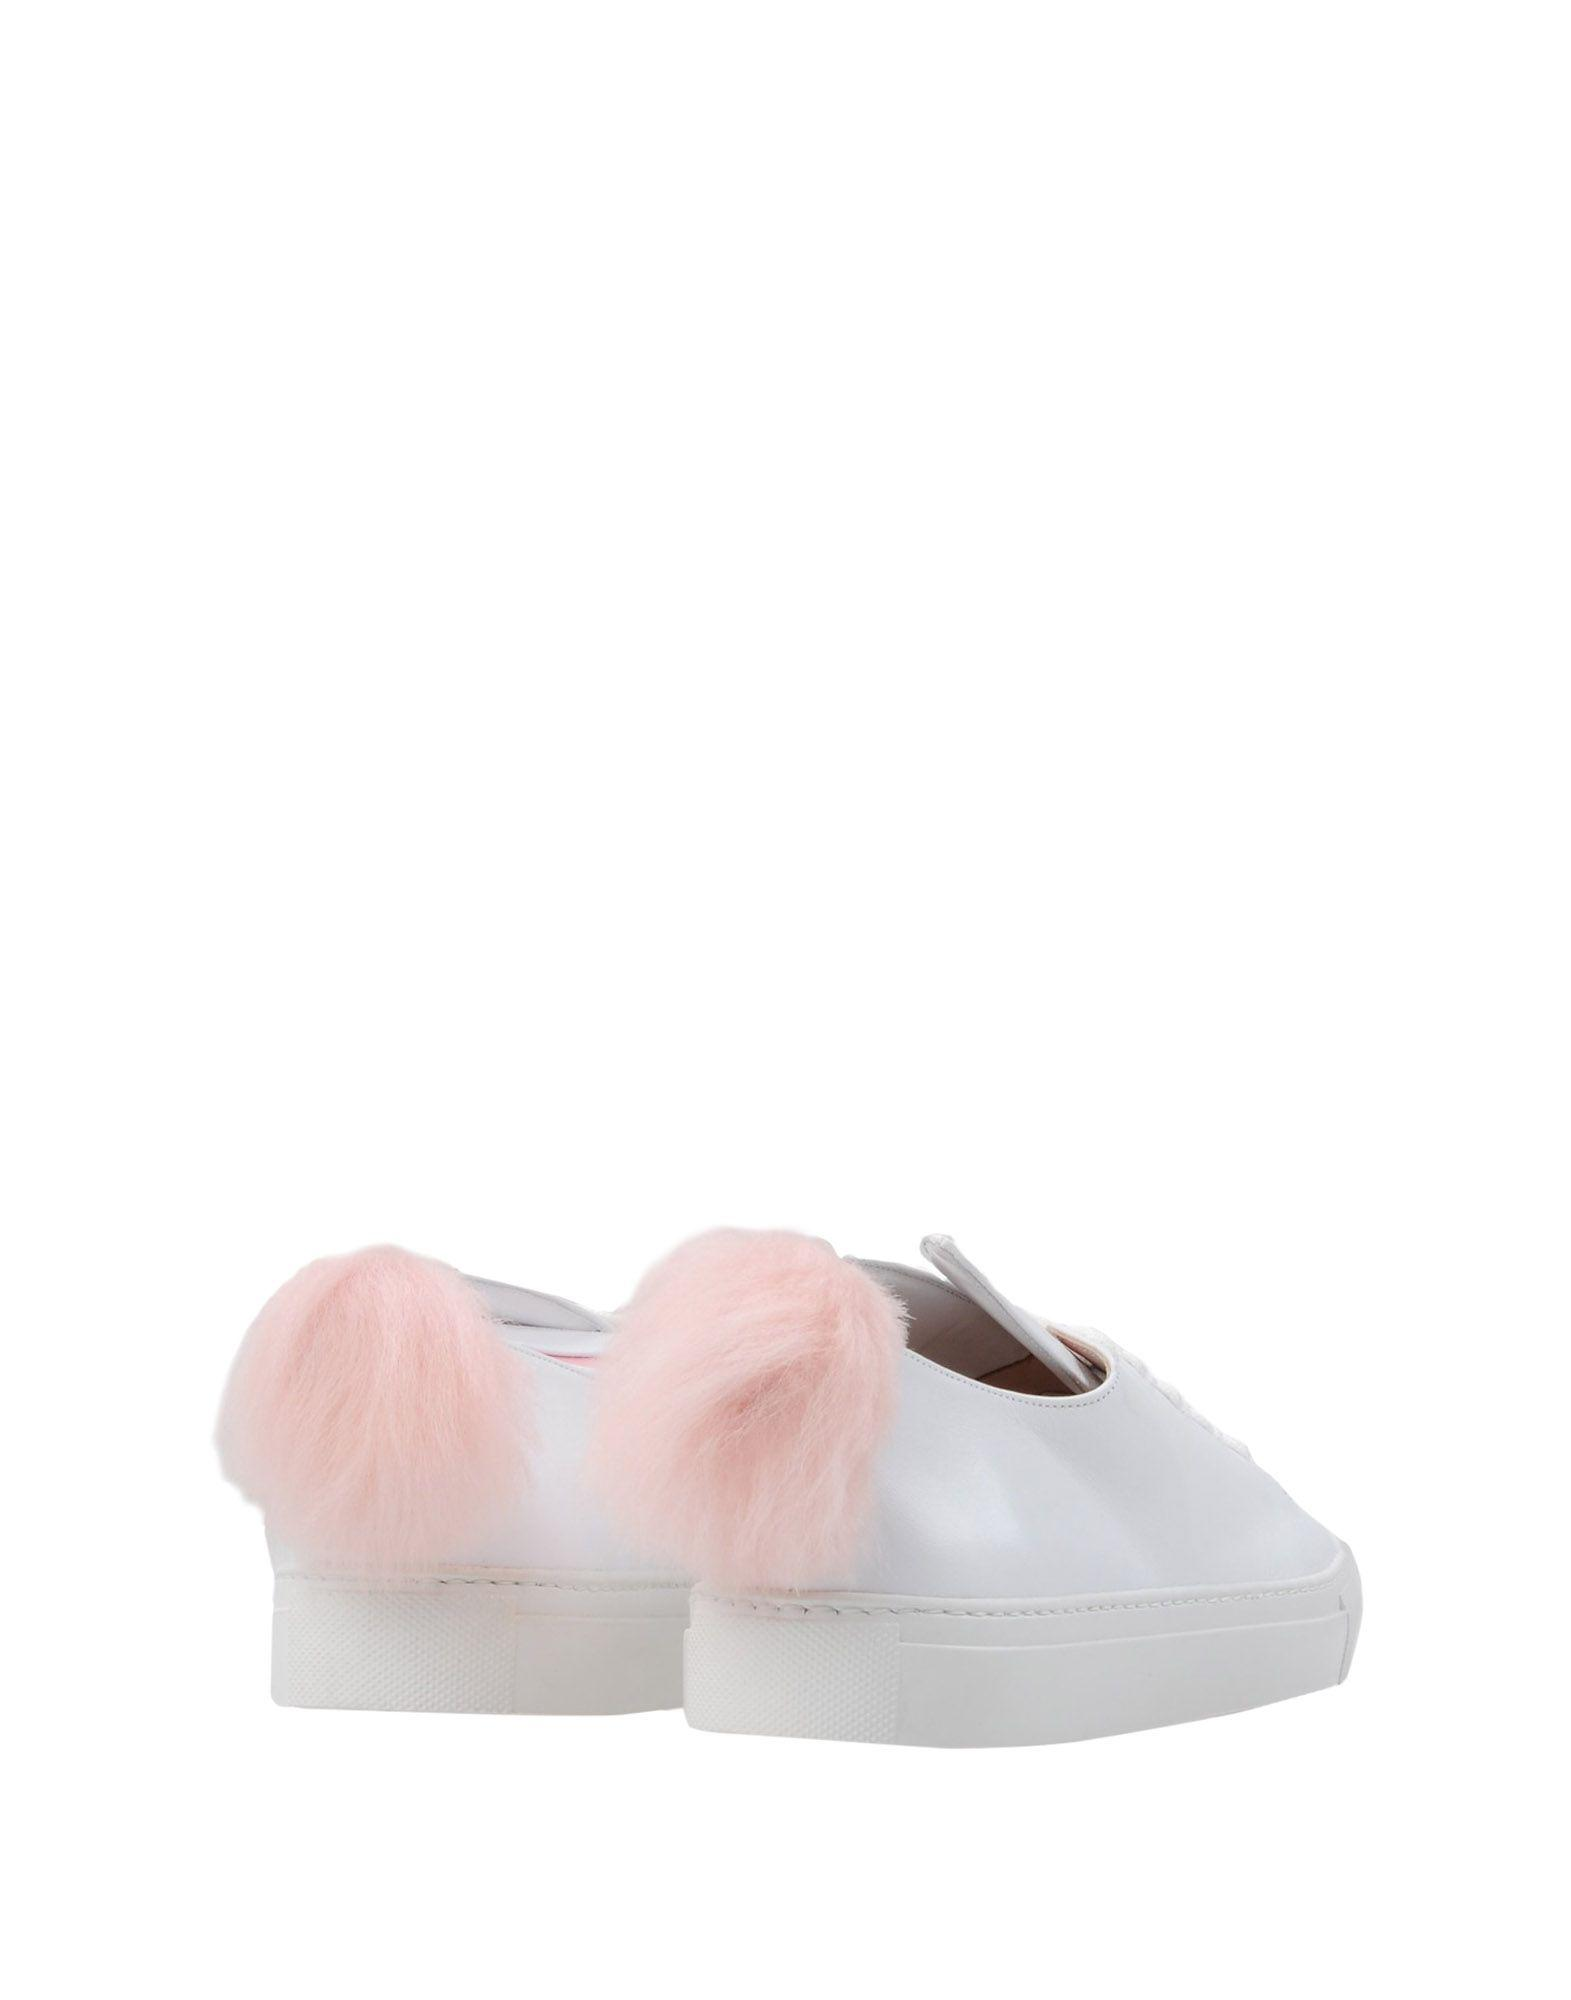 Minna Parikka Leather Low-tops & Sneakers in White